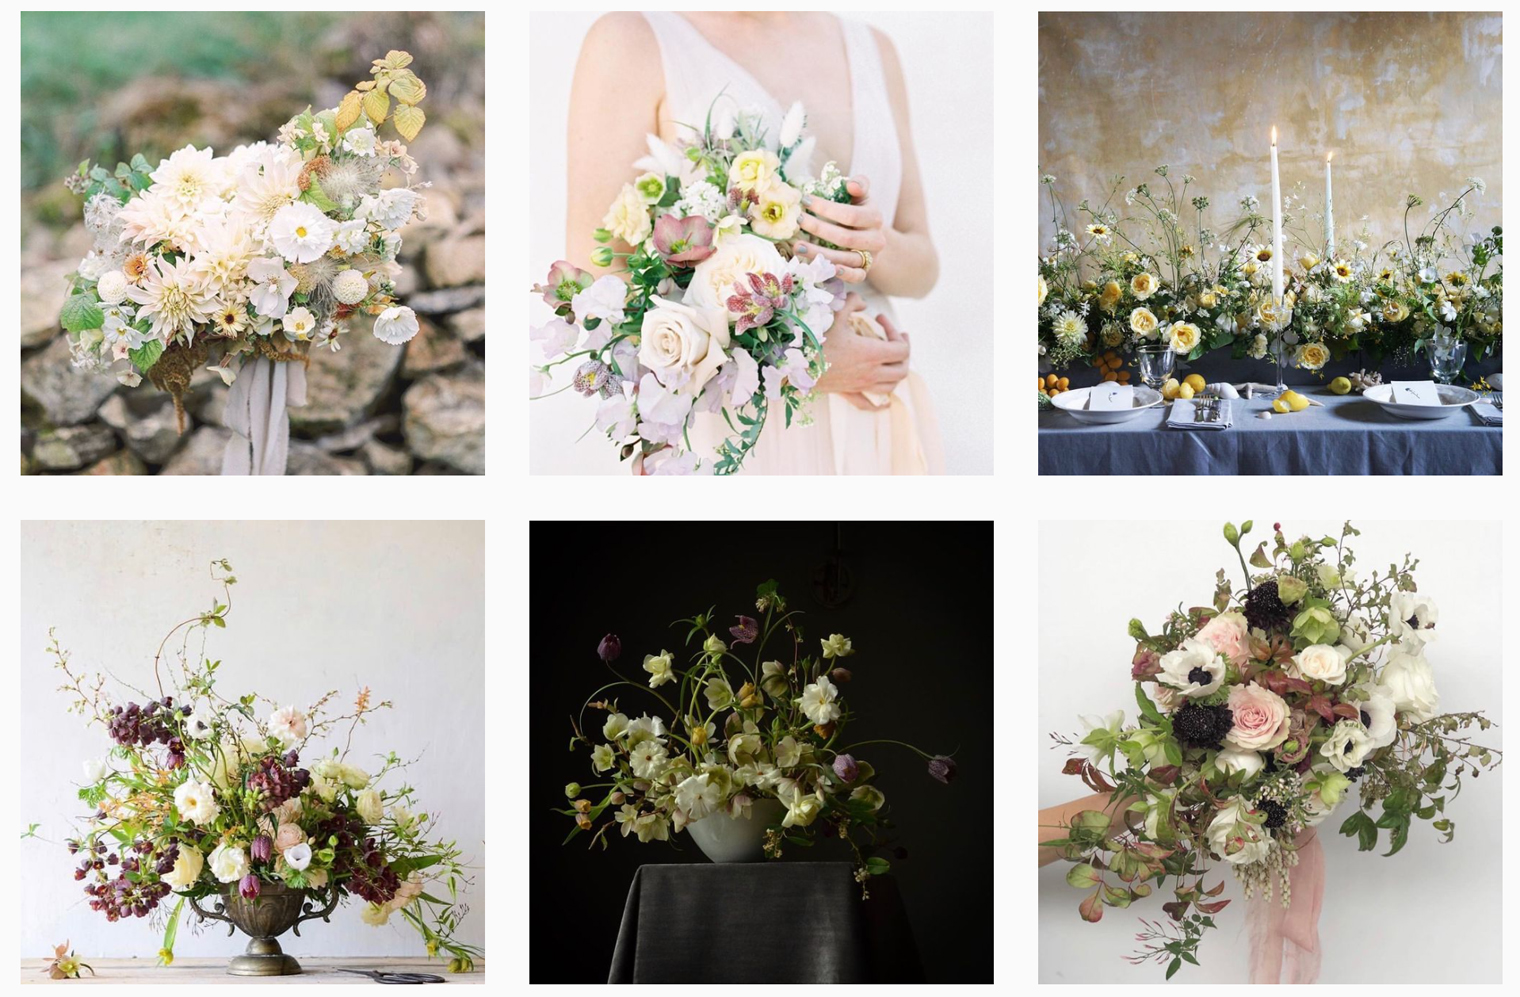 Under The Floral Spell Instagram Account